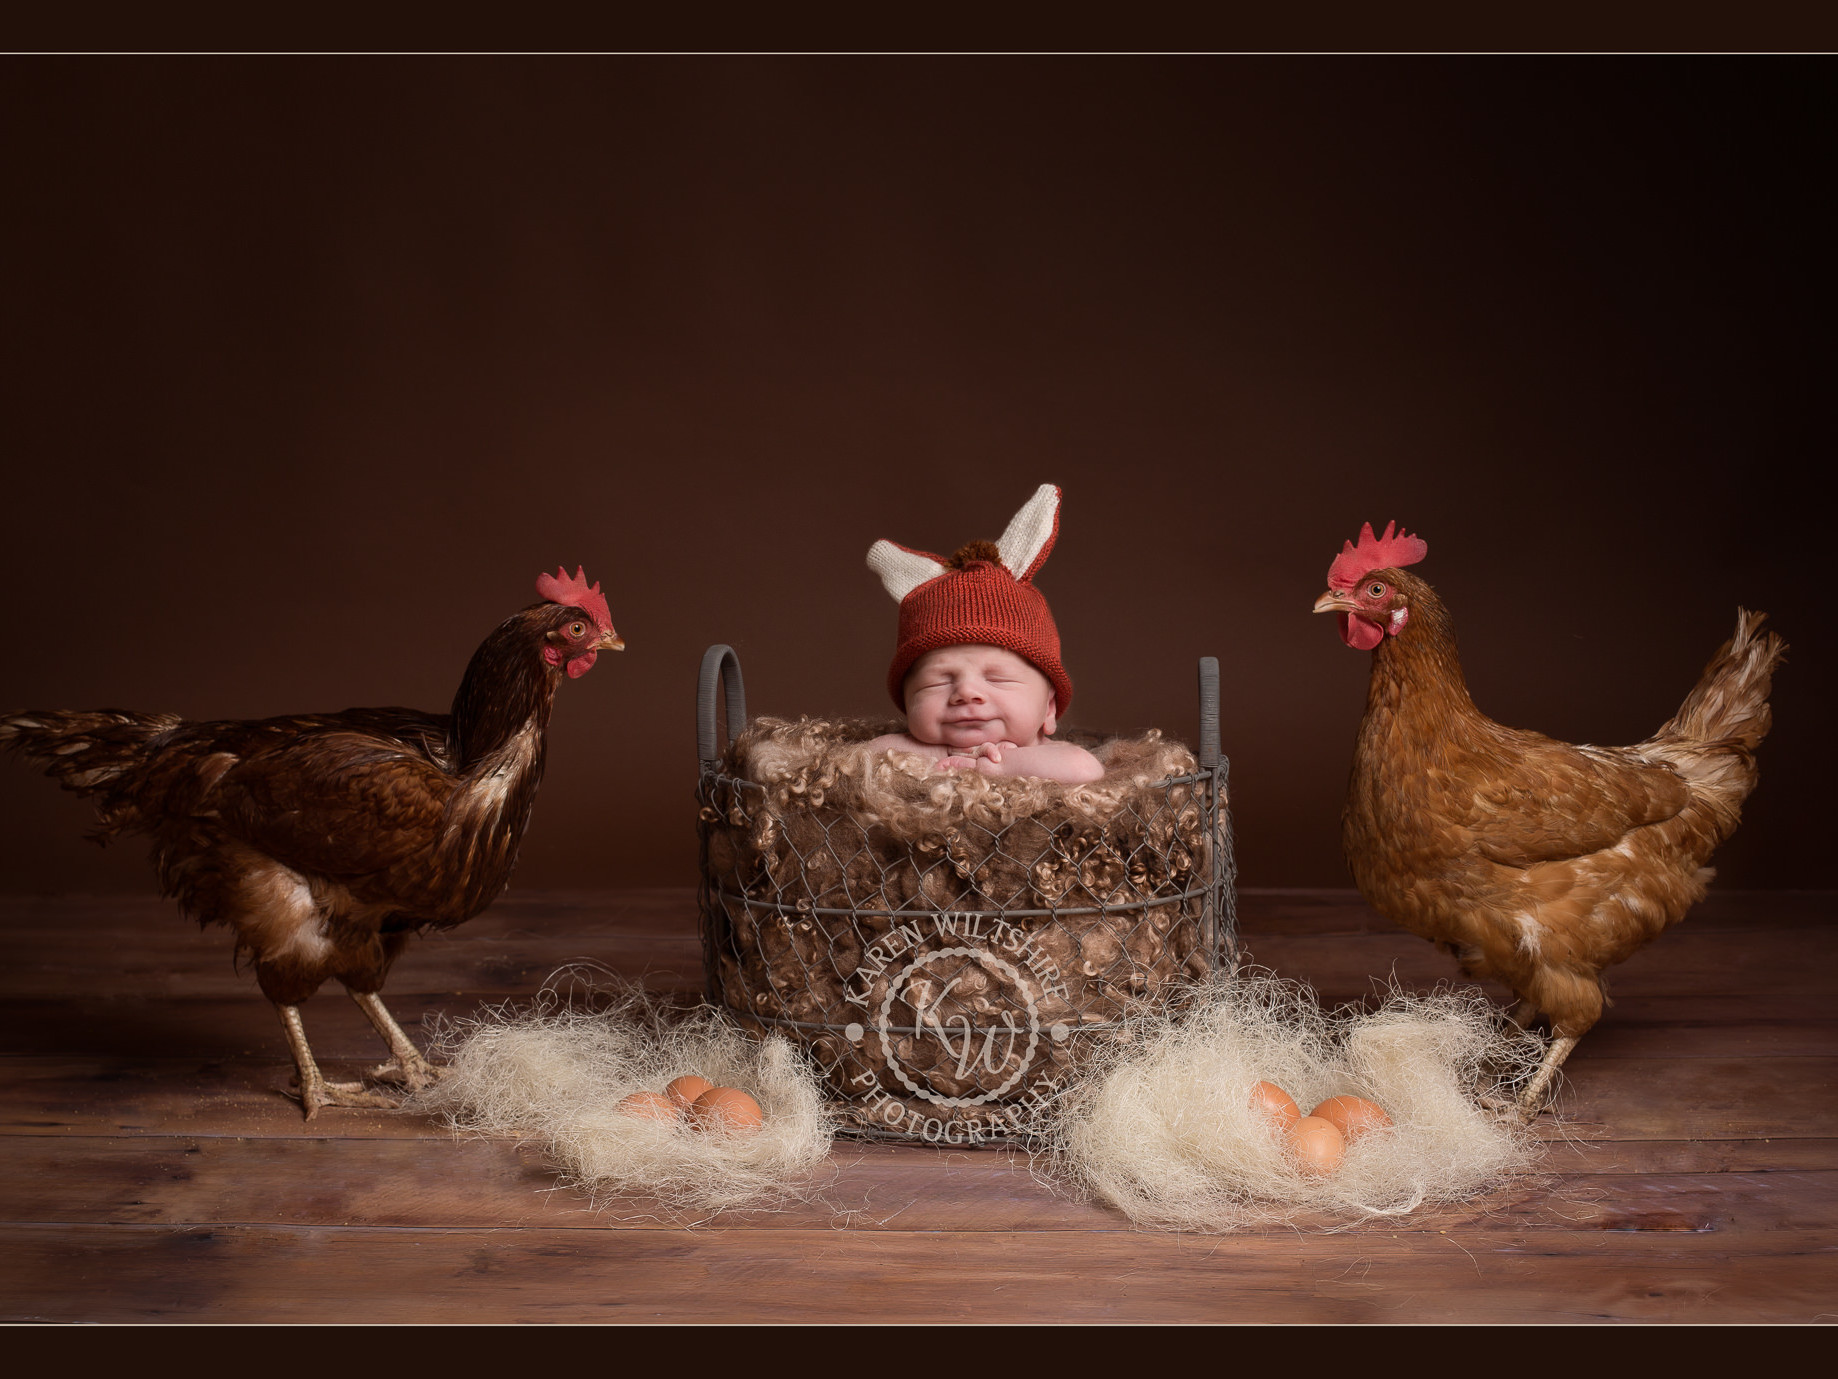 chickens looking at a newborn baby